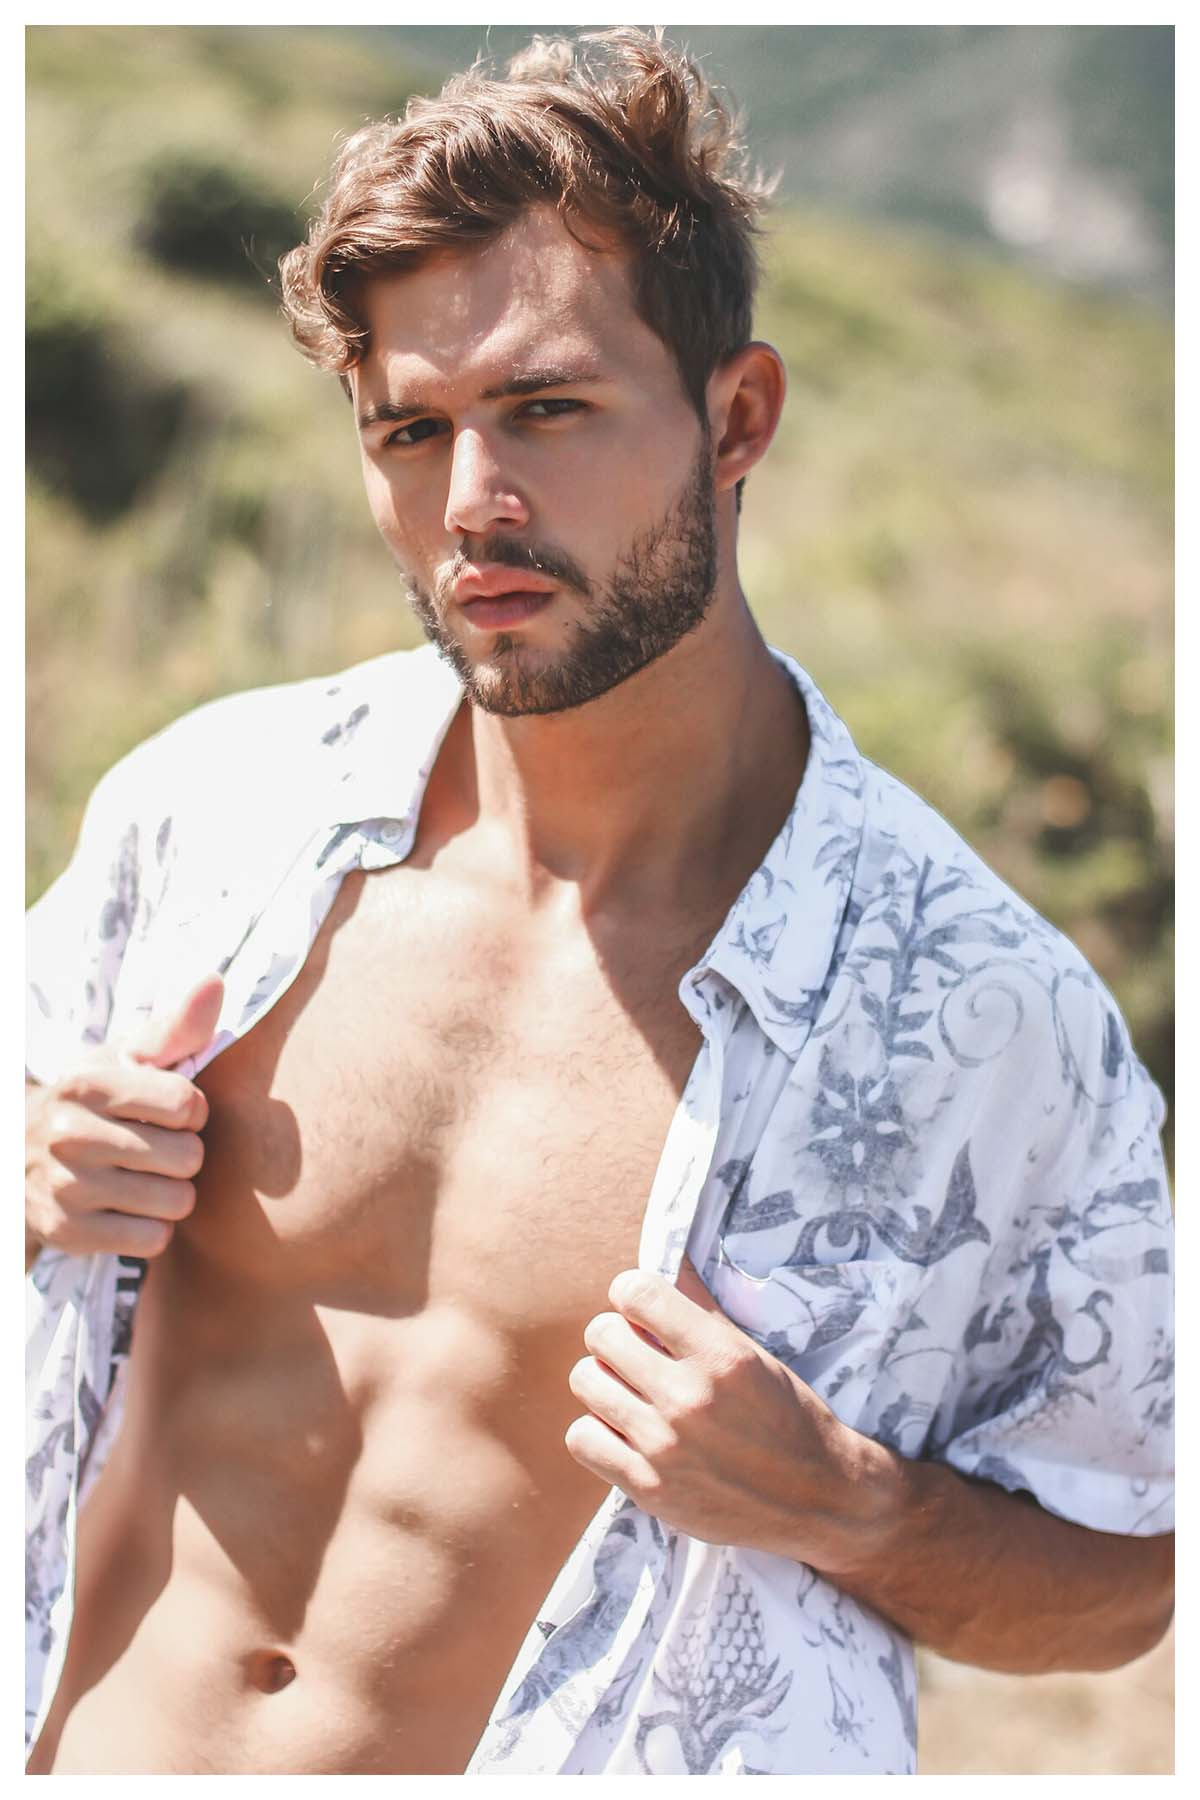 Igor Macedo by Anderson Marques for Brazilian Male Model